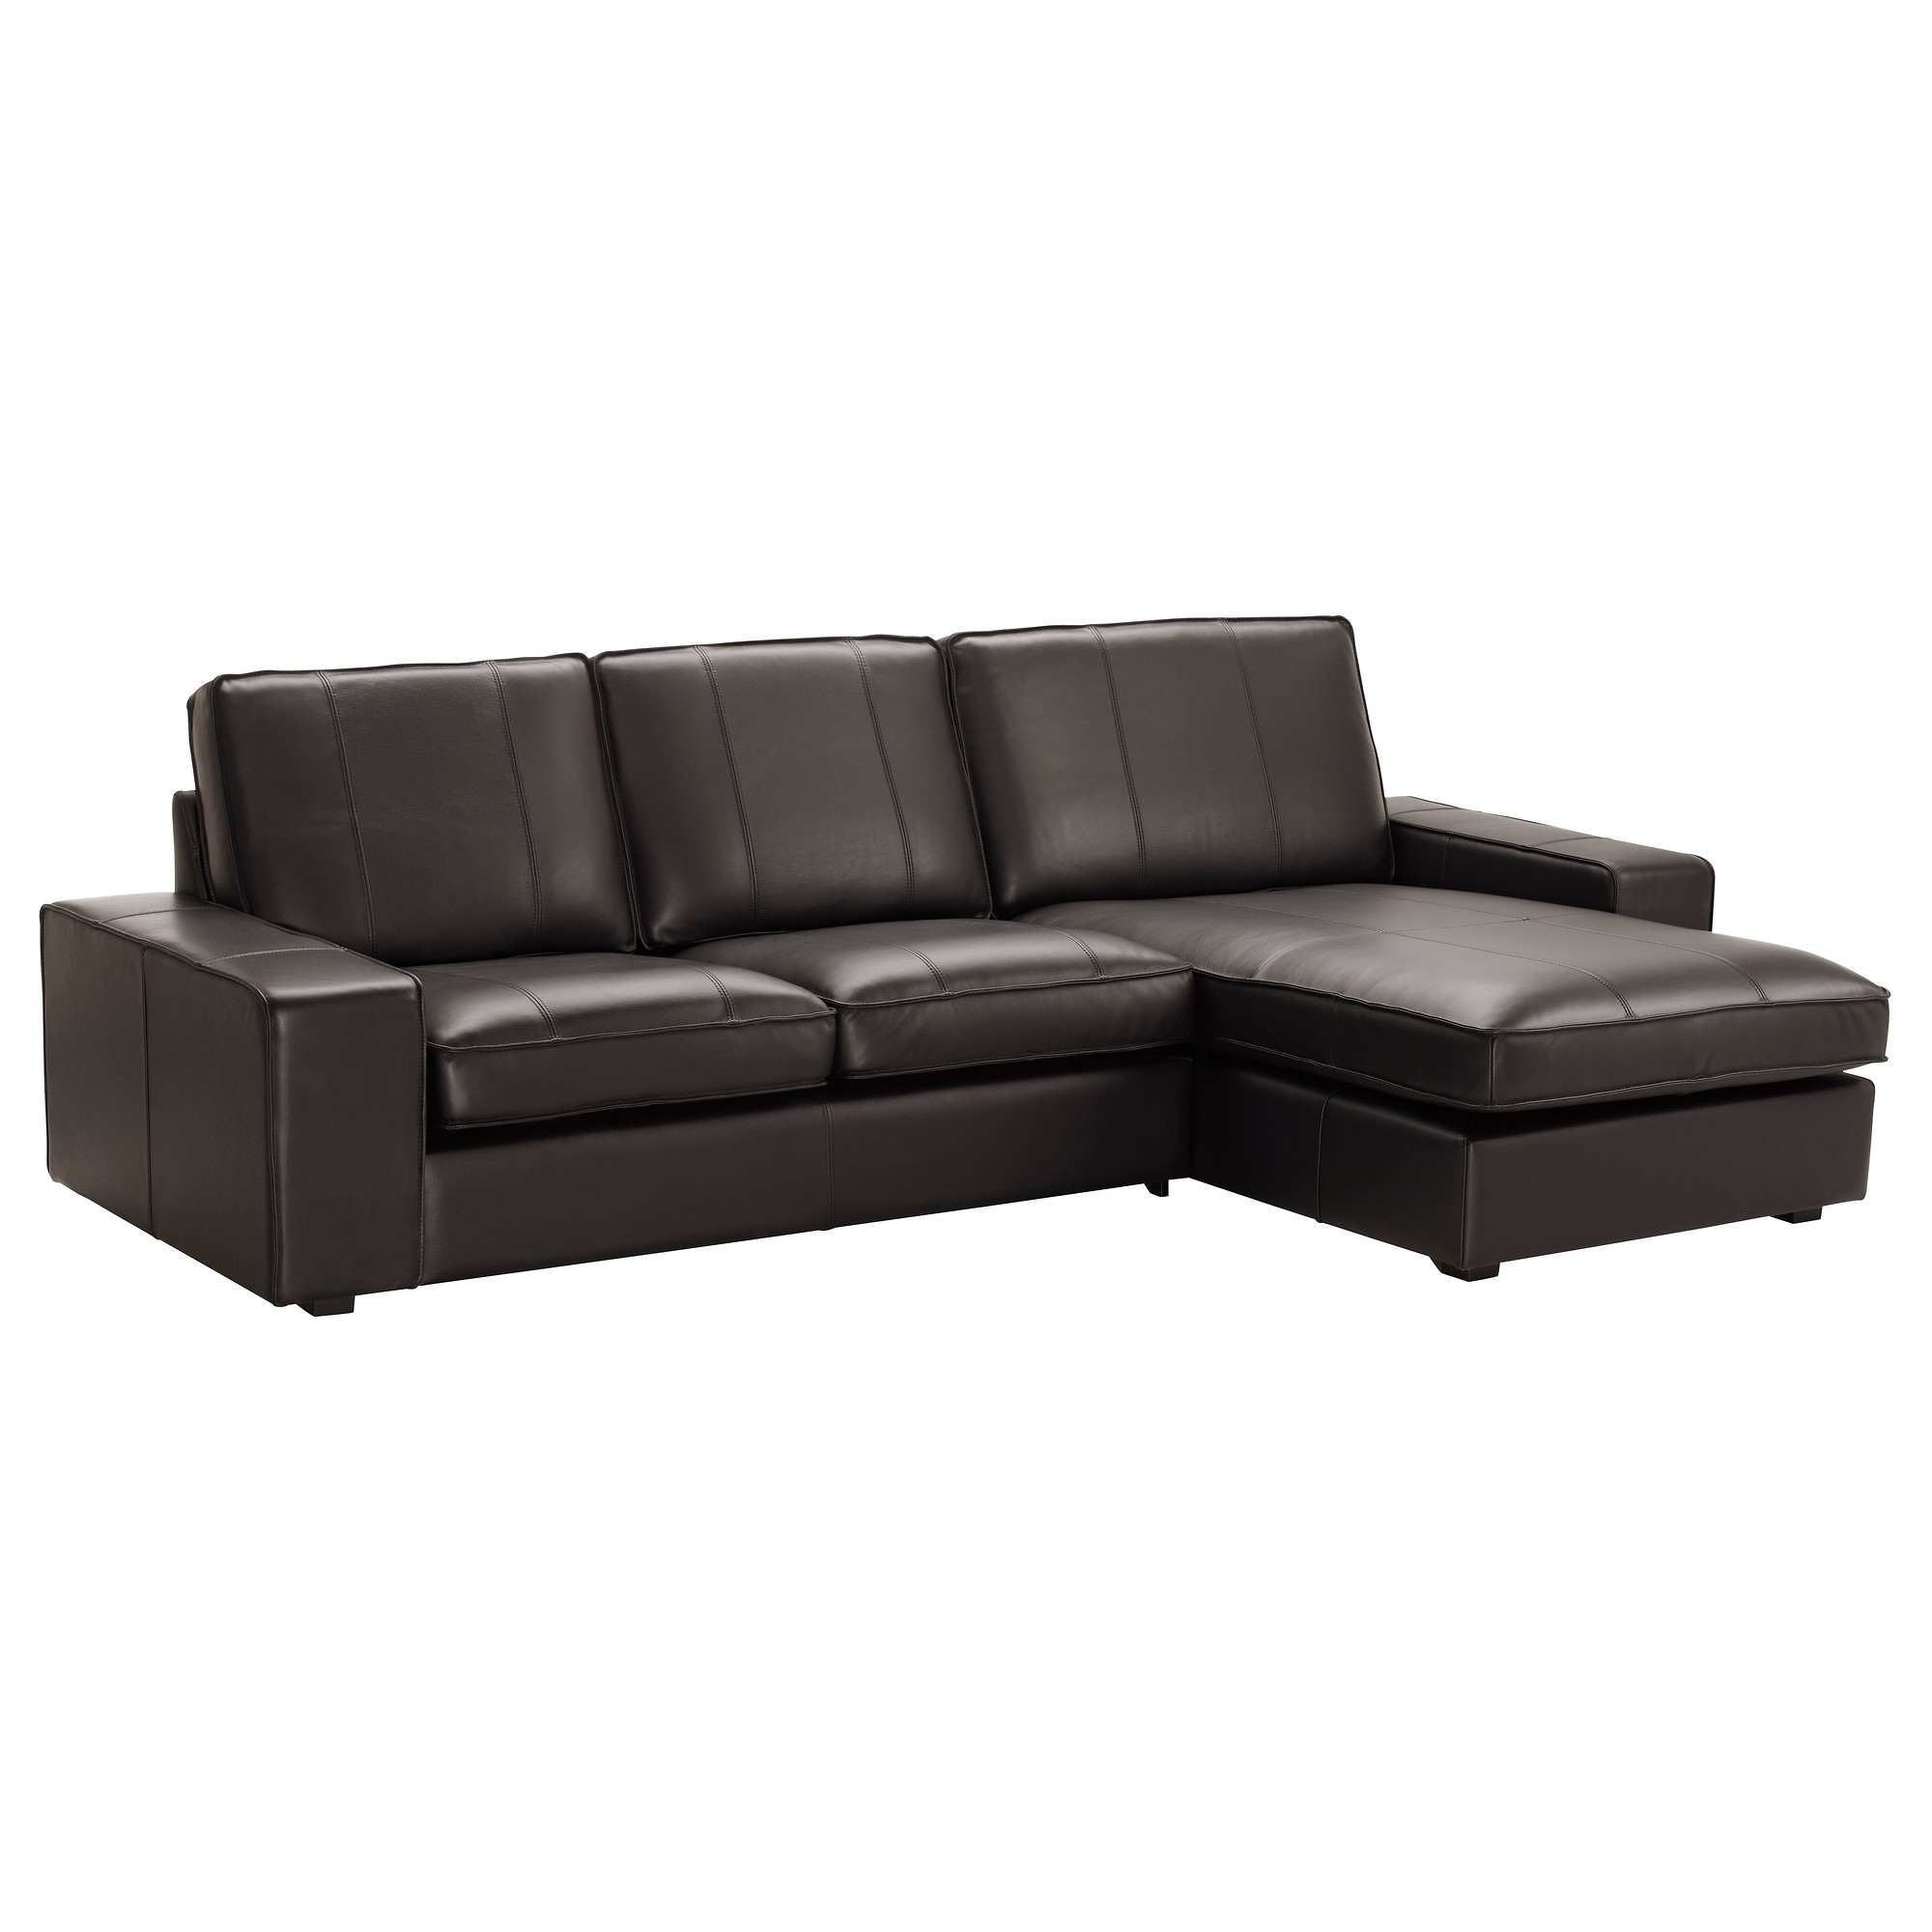 Newest Kivik Sofa – With Chaise/grann/bomstad Black – Ikea Pertaining To Sectional Sofas At Ikea (View 12 of 20)